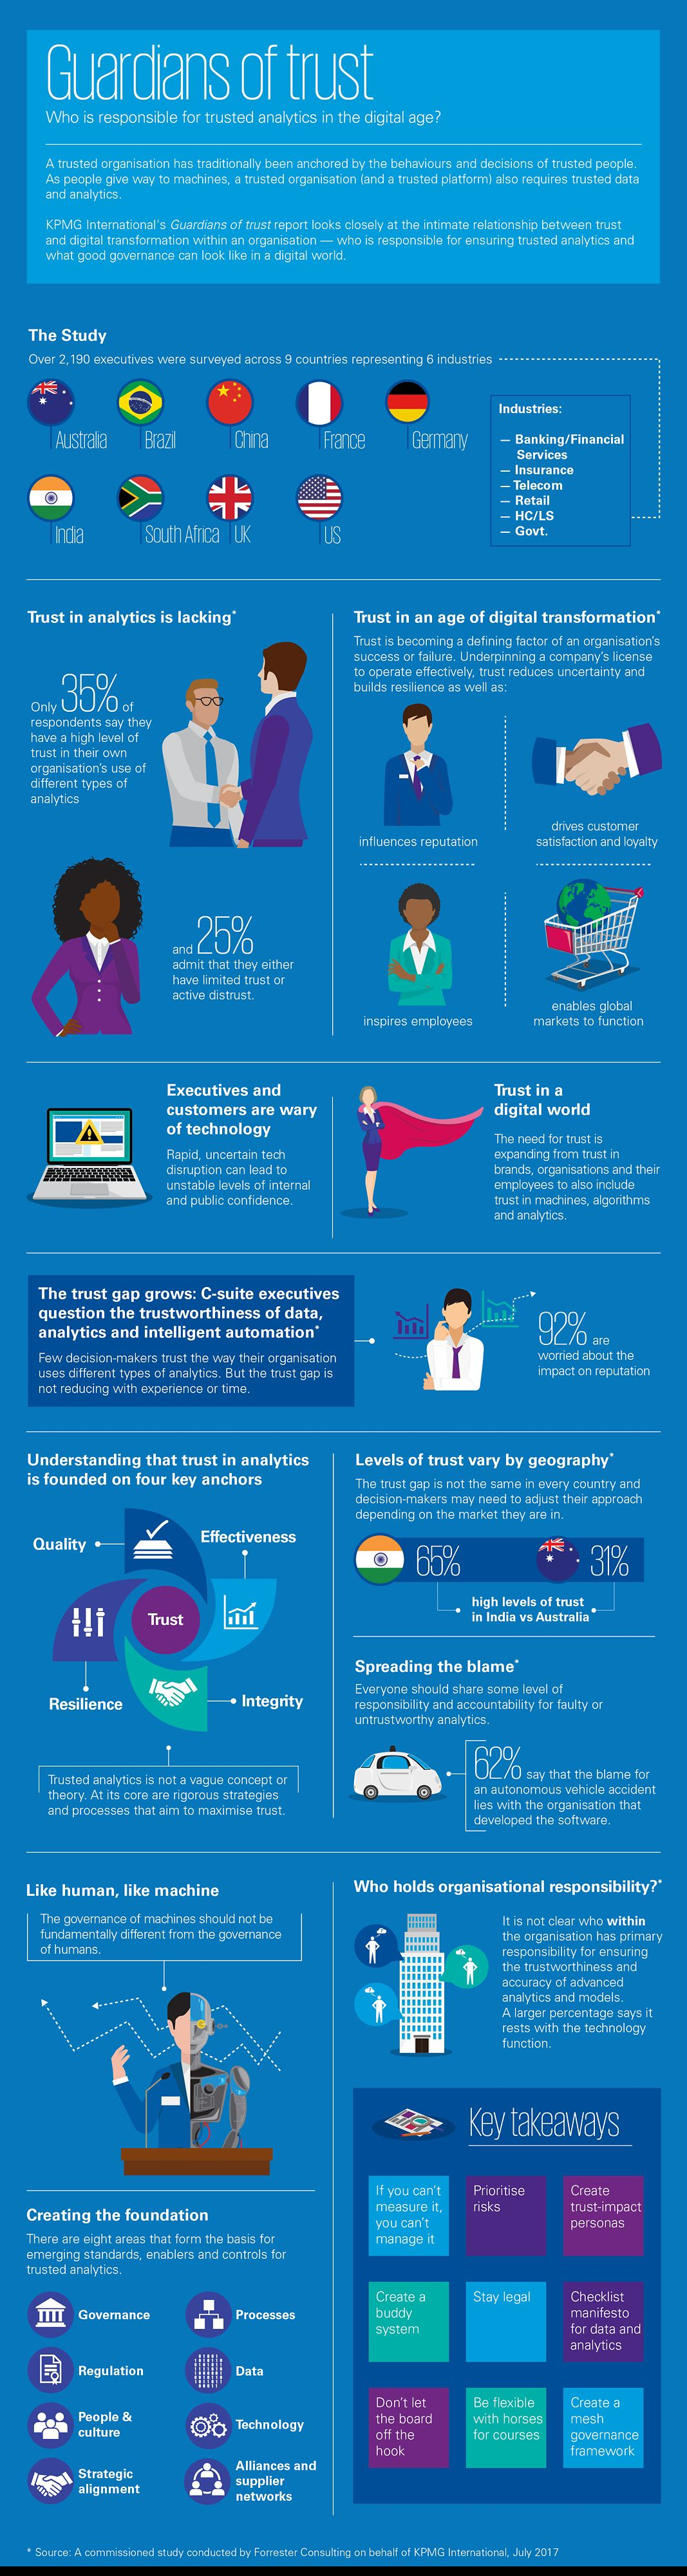 Guardians of Trust infographic